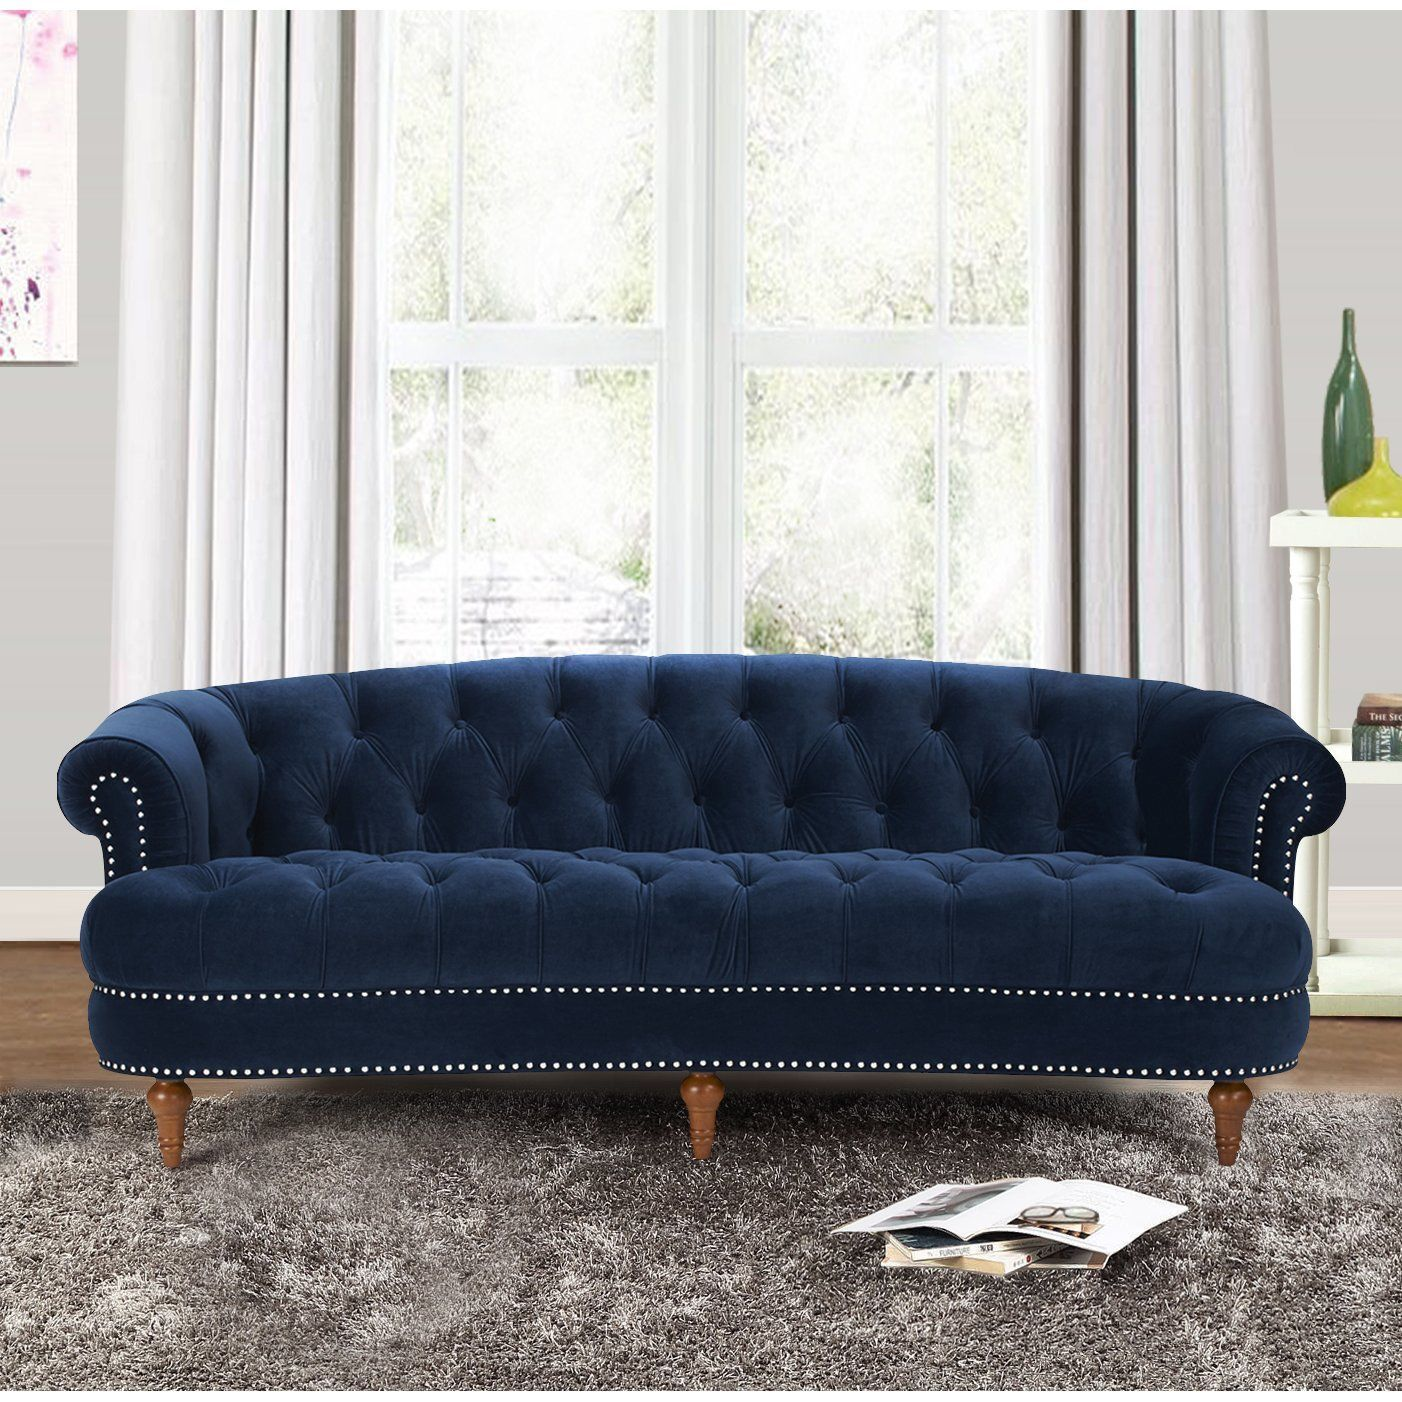 Sofa On Sale Ebay Royal Blue Grand Chesterfield Velvet Sofa Nail Heads Accent 85 L